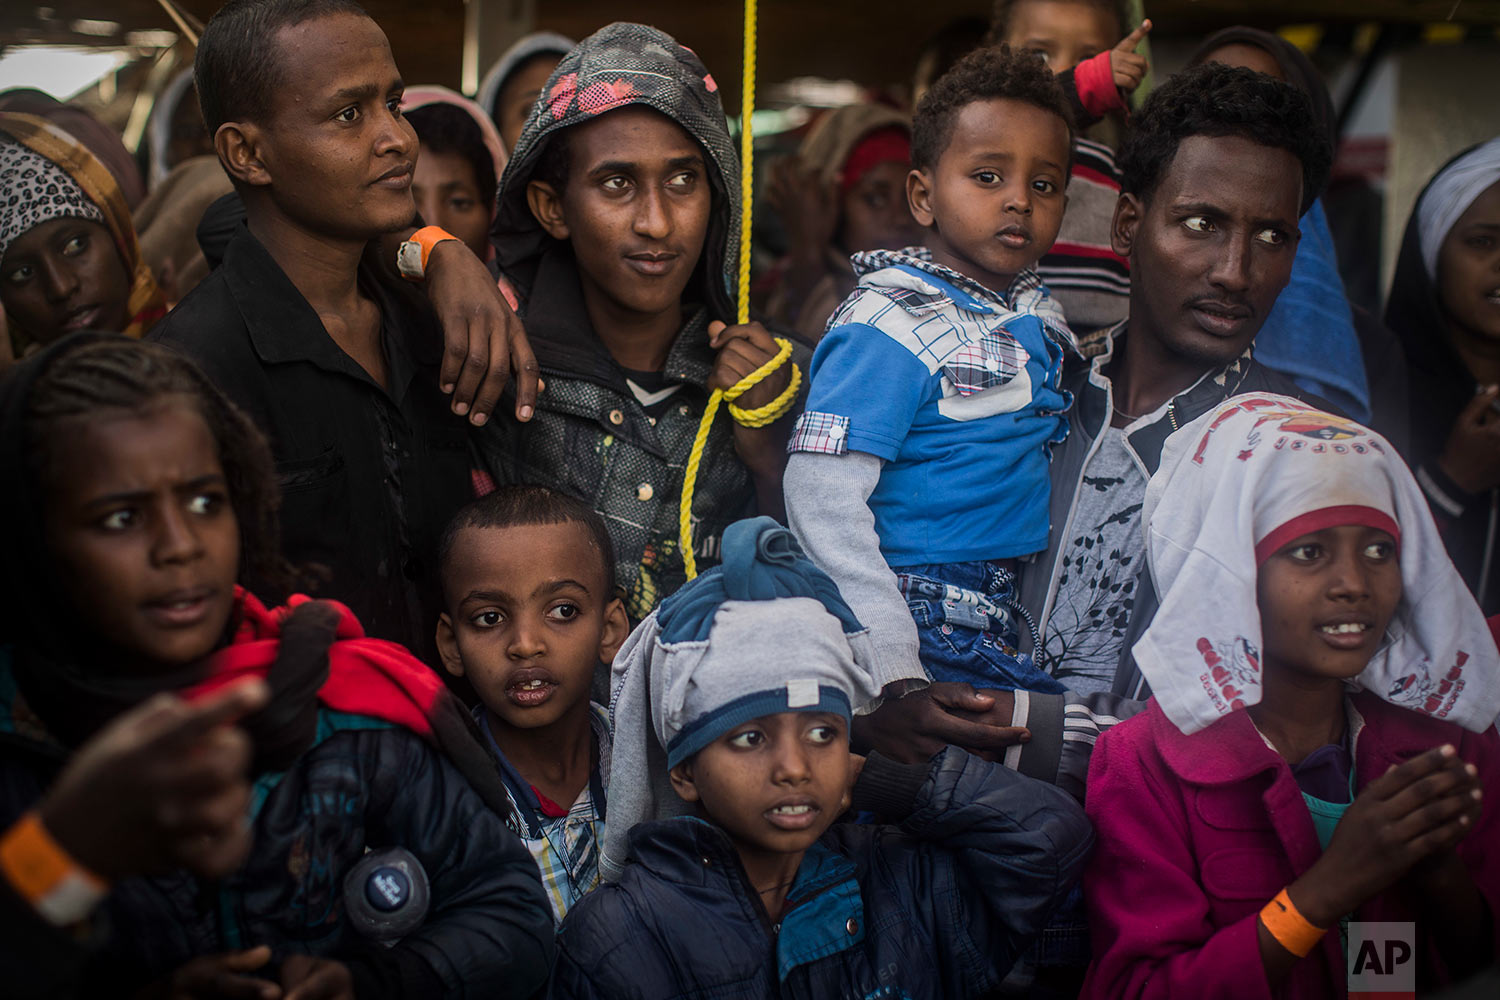 In this Friday, Jan. 19, 2018 photo Sub-Saharan refugees and migrants look to the Italian authorities from aboard the Spanish NGO Proactiva Open Arms rescue vessel, at the port of Pozzallo, in Sicily, Italy. (AP Photo/Santi Palacios)